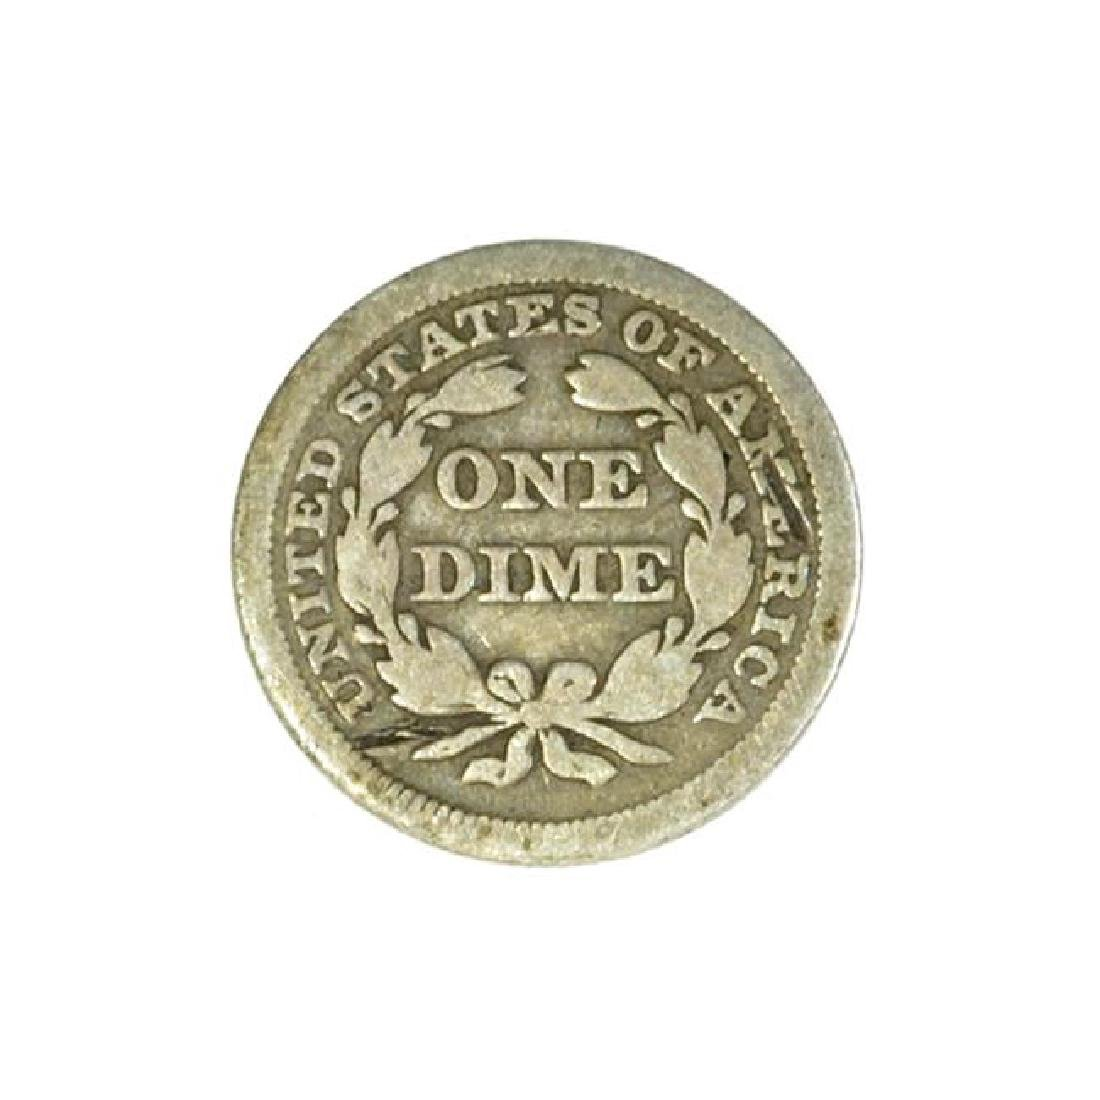 1855 Arrows at Date Liberty Seated Dime Coin (JG) - 2